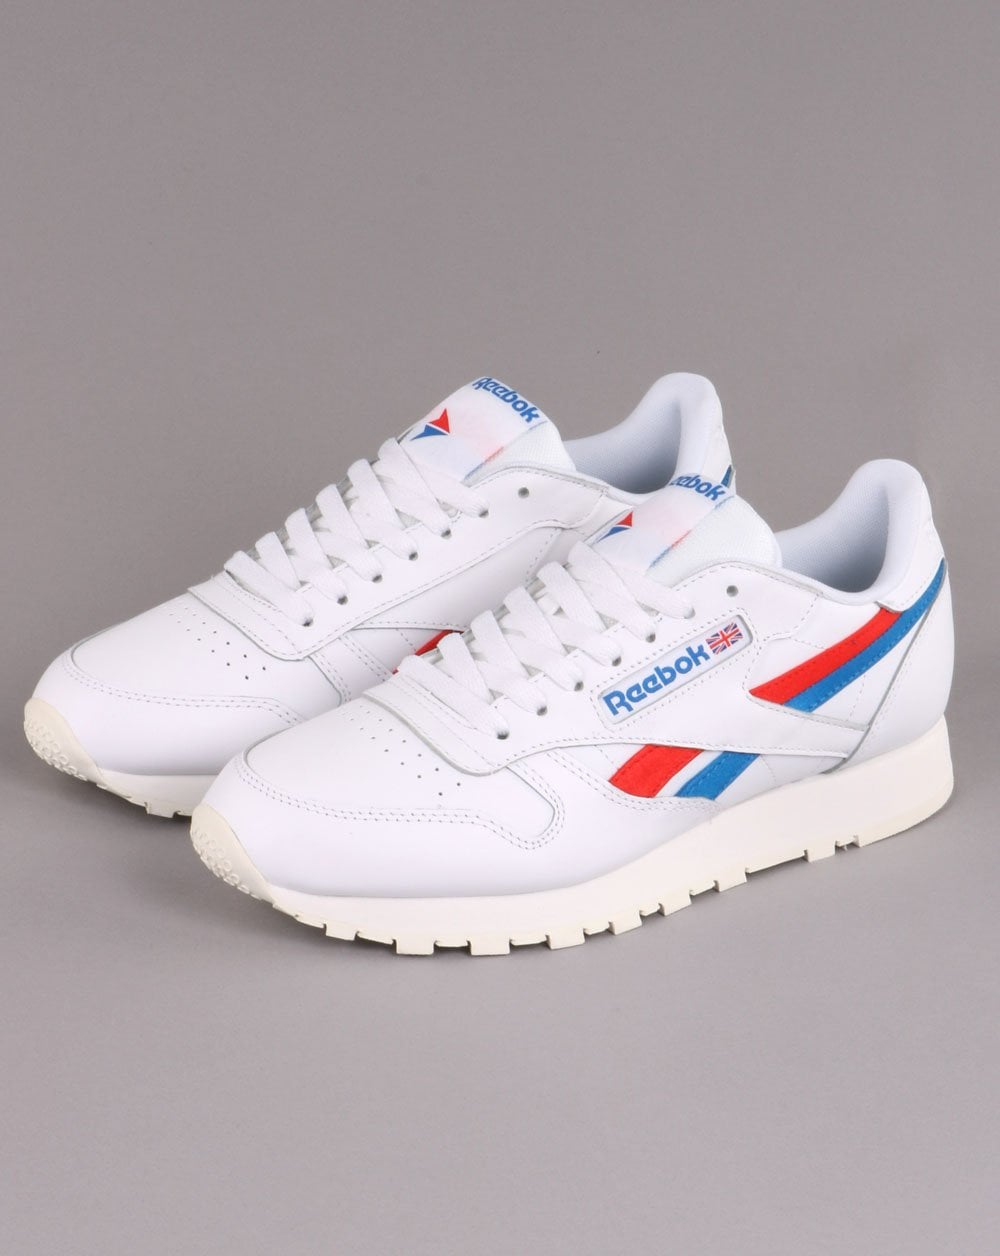 Reebok Classic white/red/blue